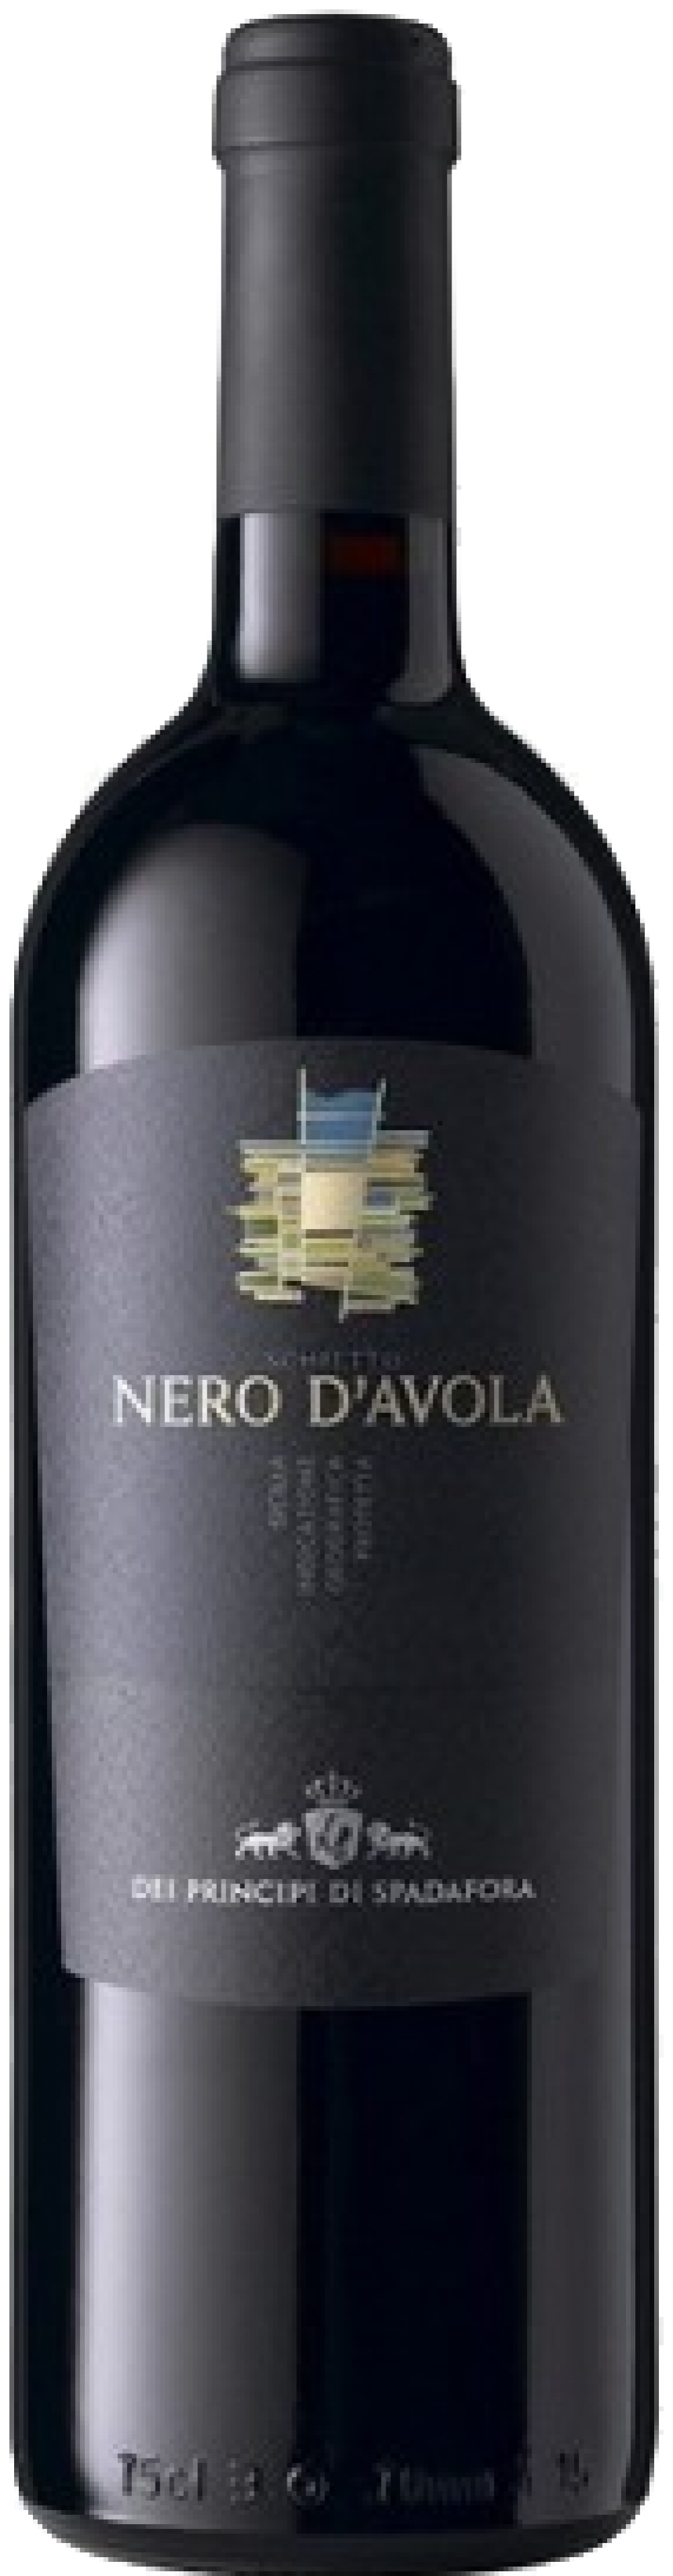 files/images/wines/Italy/spadafora/2011 Schietto Nero D'Avola.png